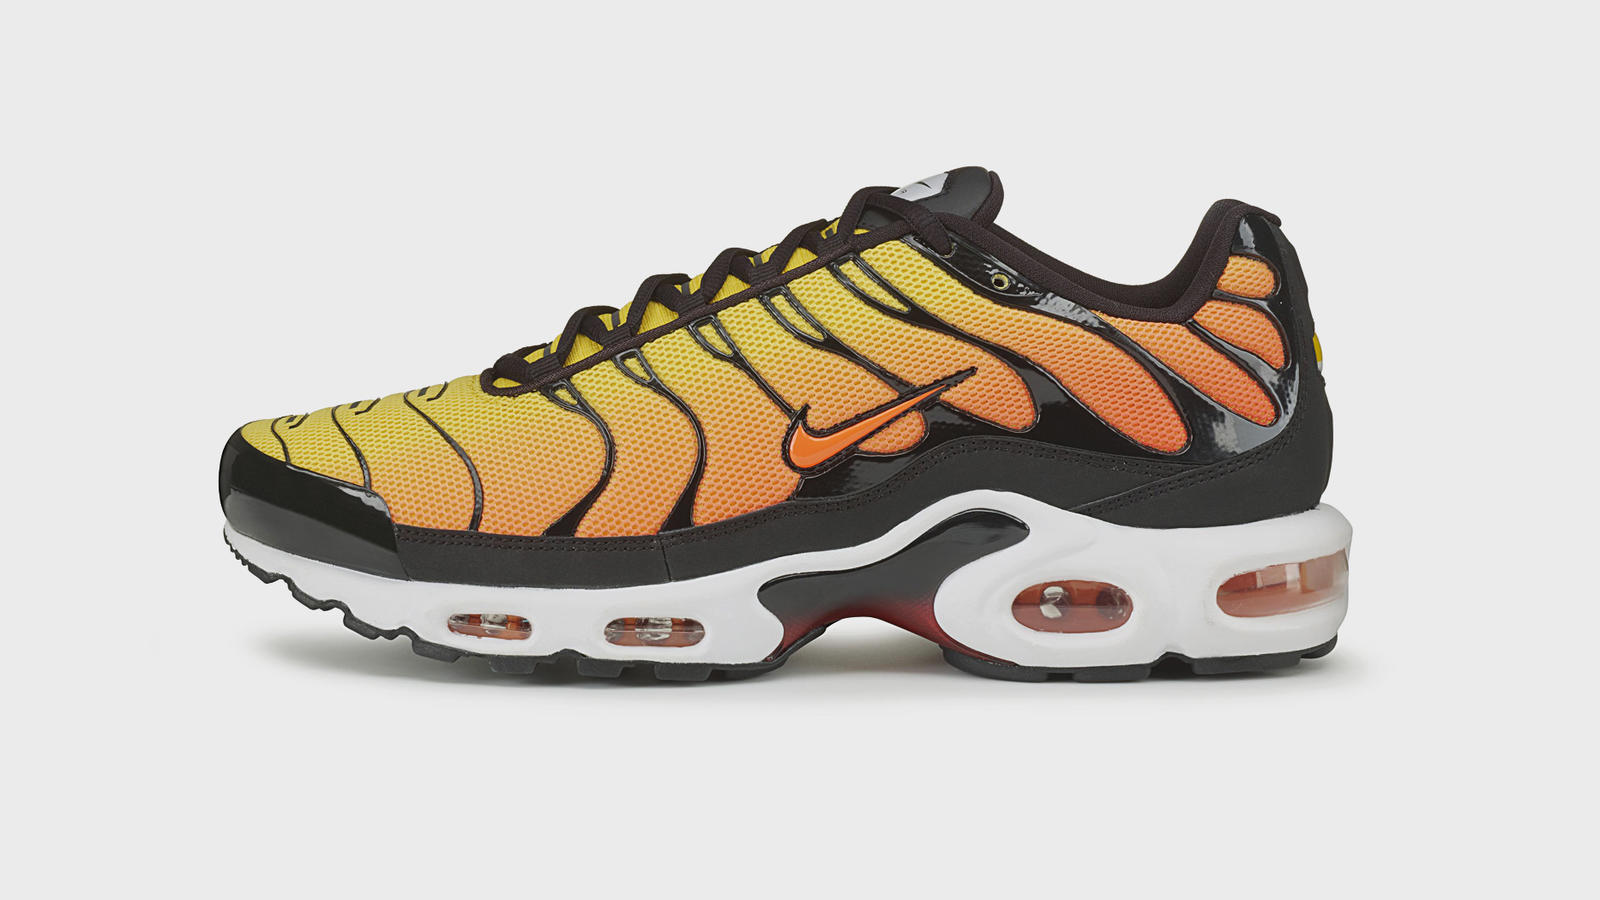 detailed look 87535 c88f9 The Untold Story of the Nike Air Max Plus 23